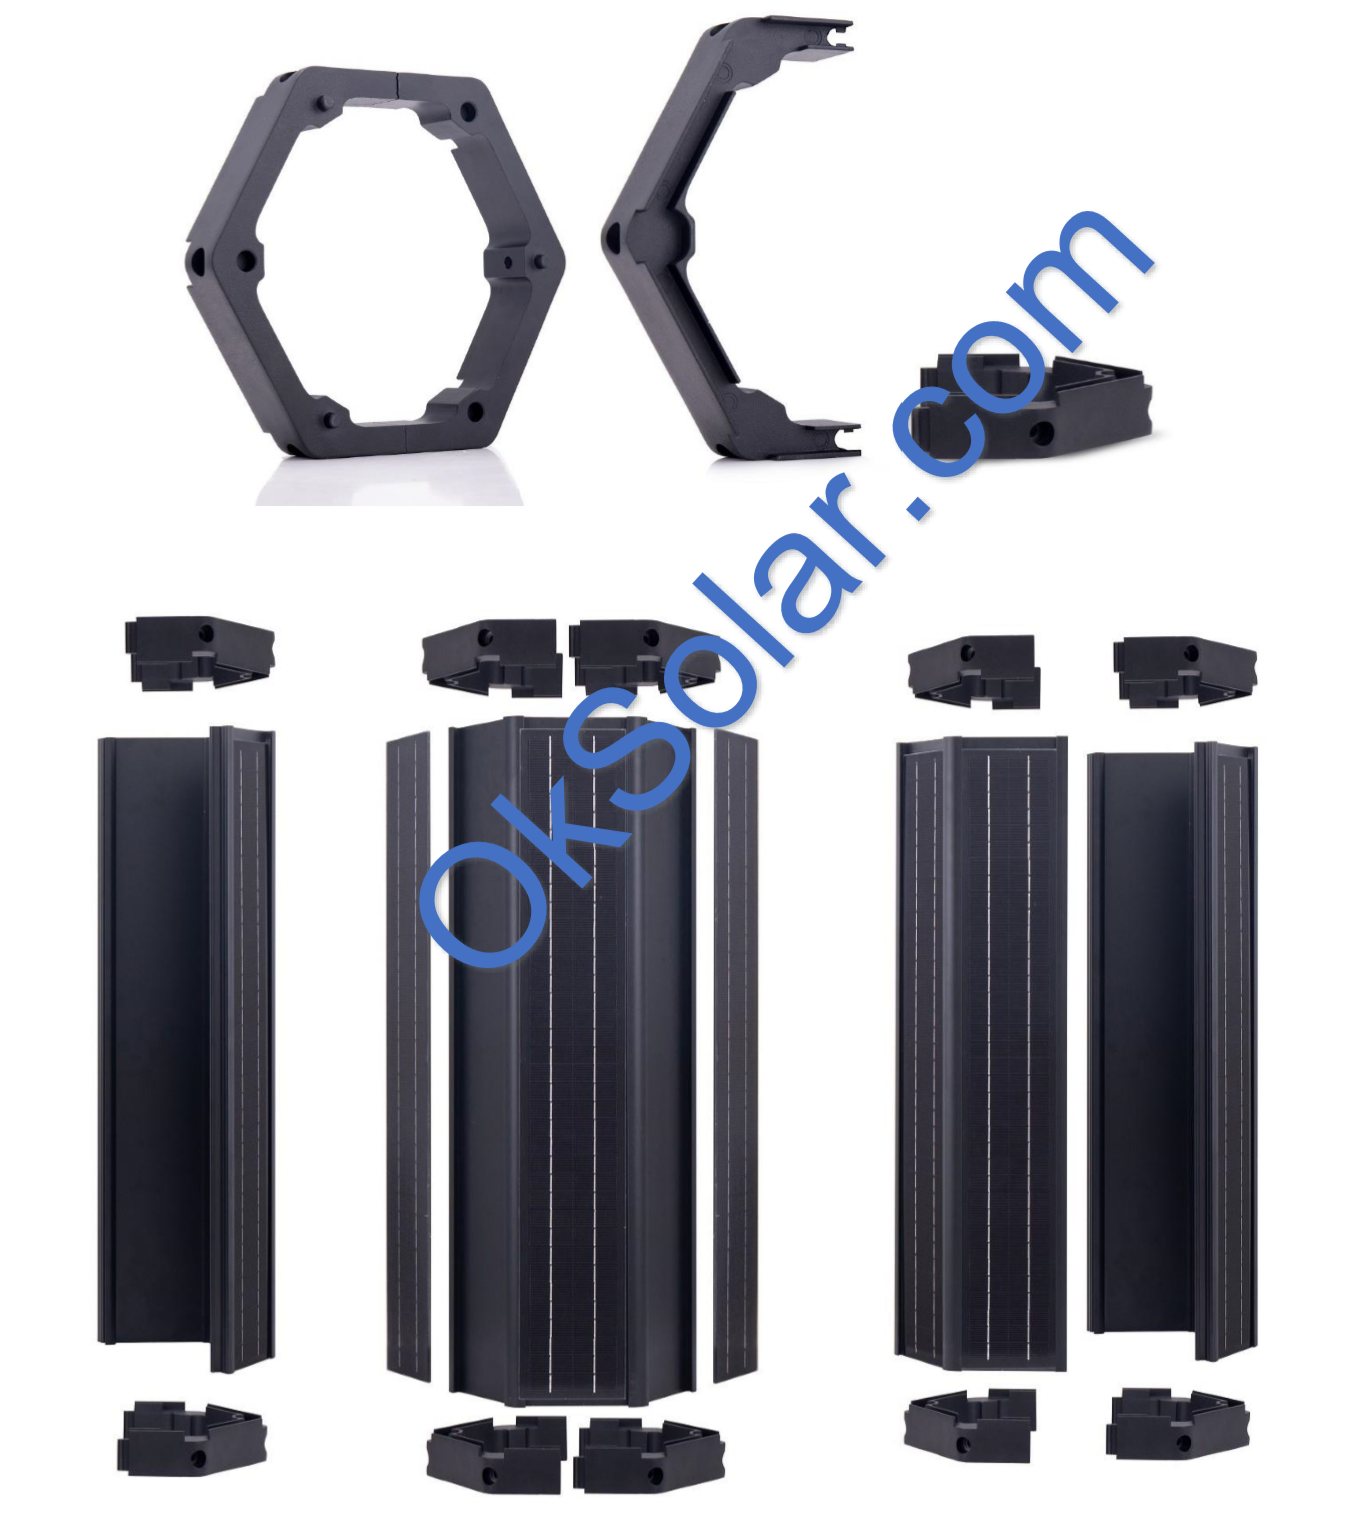 Cylinder Solar Module | Cylindrical Solar Panels | Cylindrical Solar Modules | solar Module | solar Panel | Solar Parking Lot Lighting | Solar warehouse Parking lot lighting | Solar LED Light for Residential and Commercial | Solar Airport Parking lot lighting | Solar Module Wrap| Cylinder Solar Module Wrap.